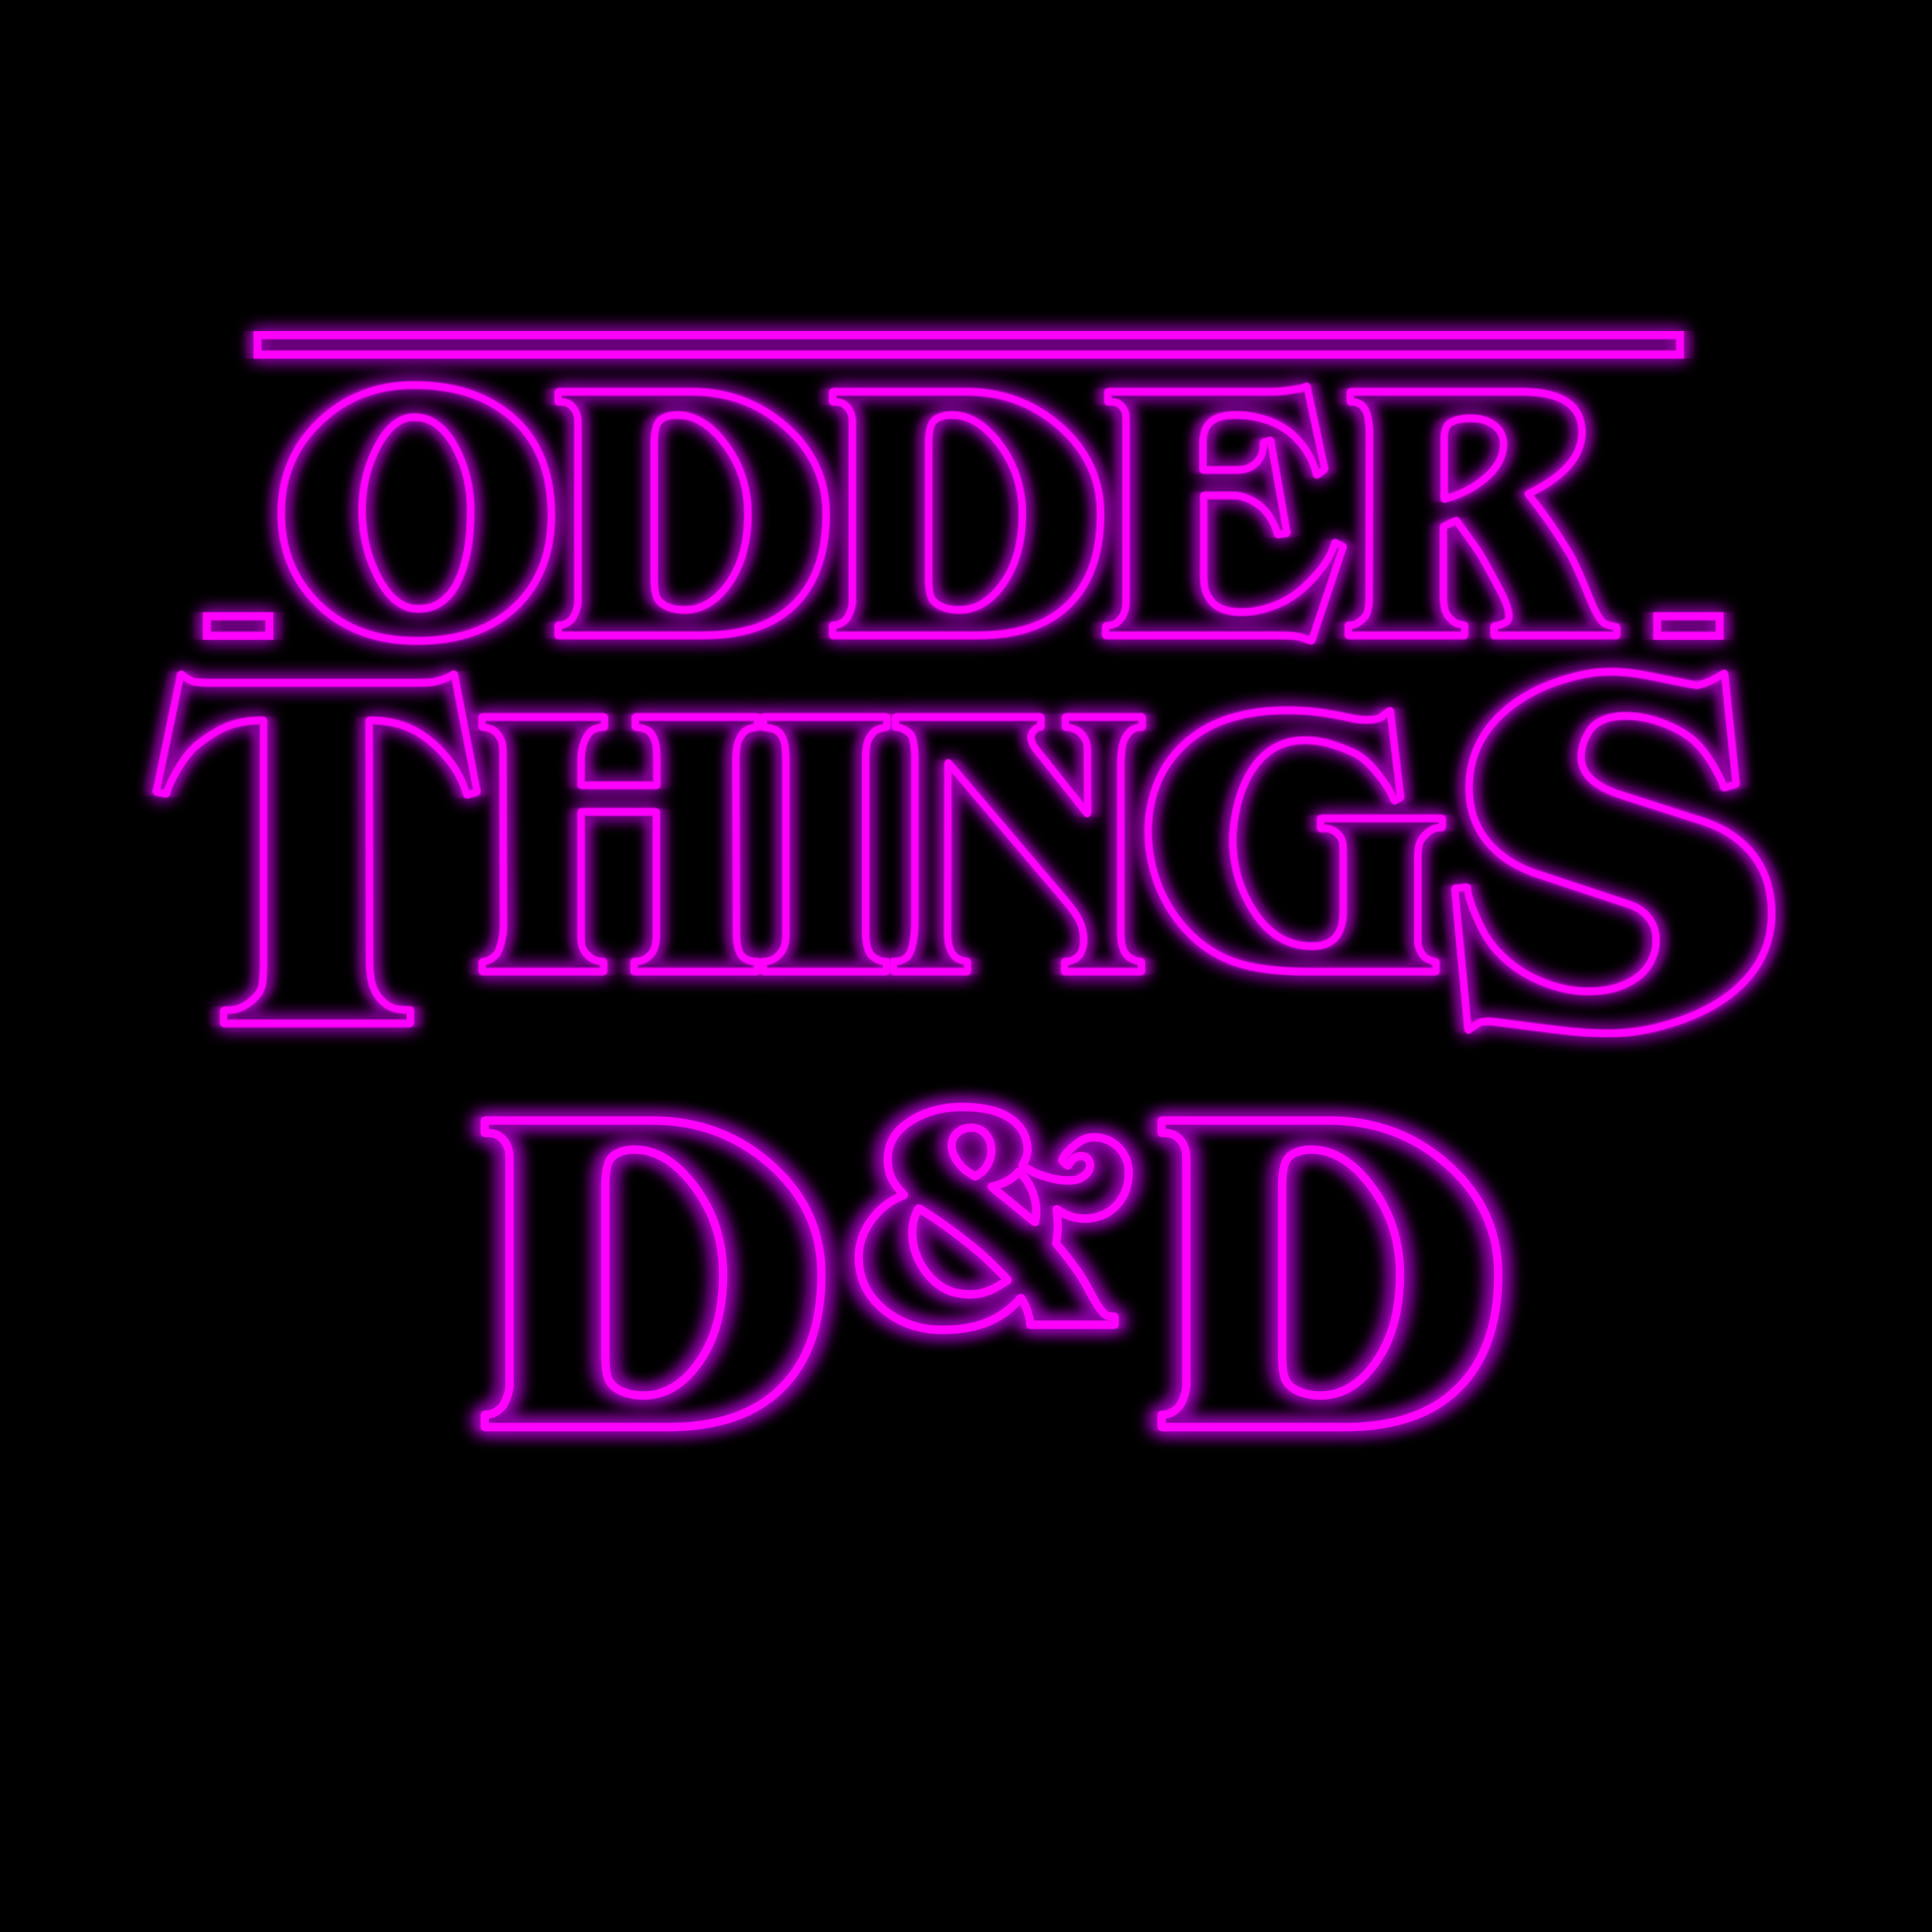 840 - Odder Things Dino and Downstairs Bored Game Unboxing